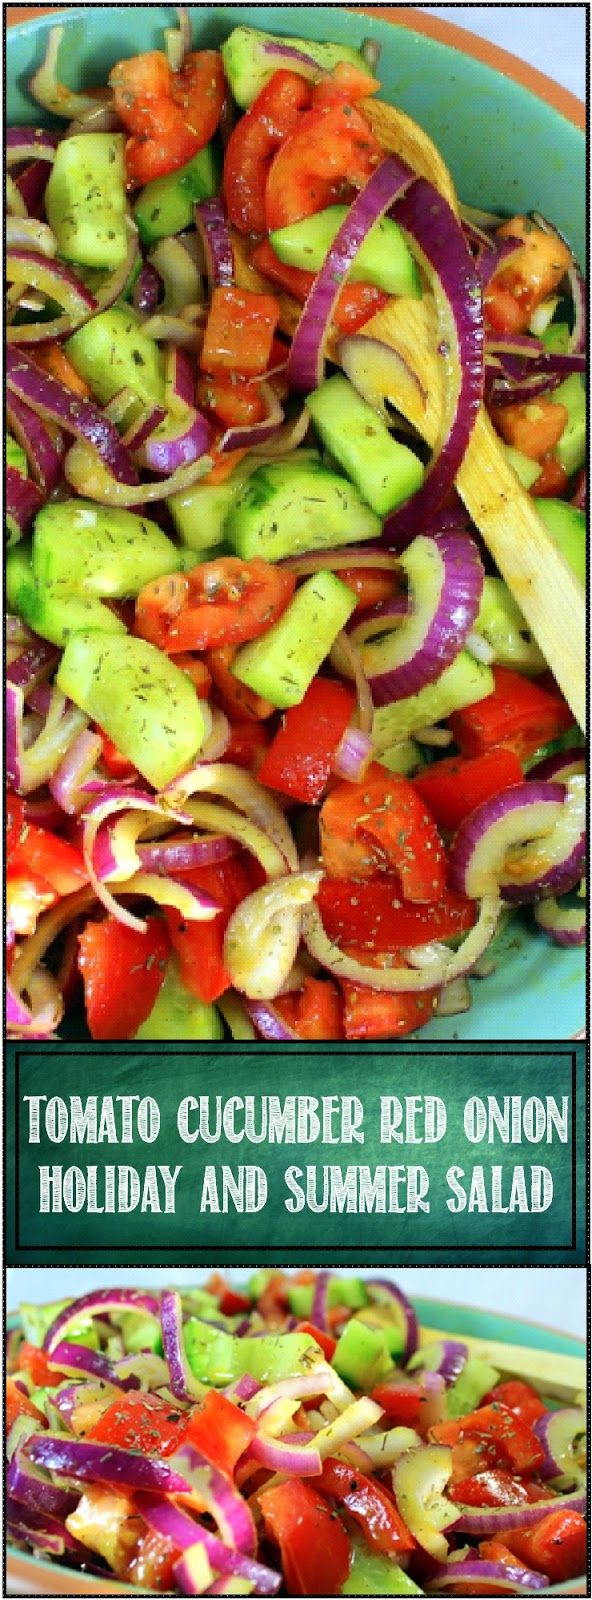 Inspired By eRecipeCards: Tomato - Cucumber - Red Onion Holiday Salad in a Fresh Made Honey Mustard Vinaigrette - 52 Specialty Salads